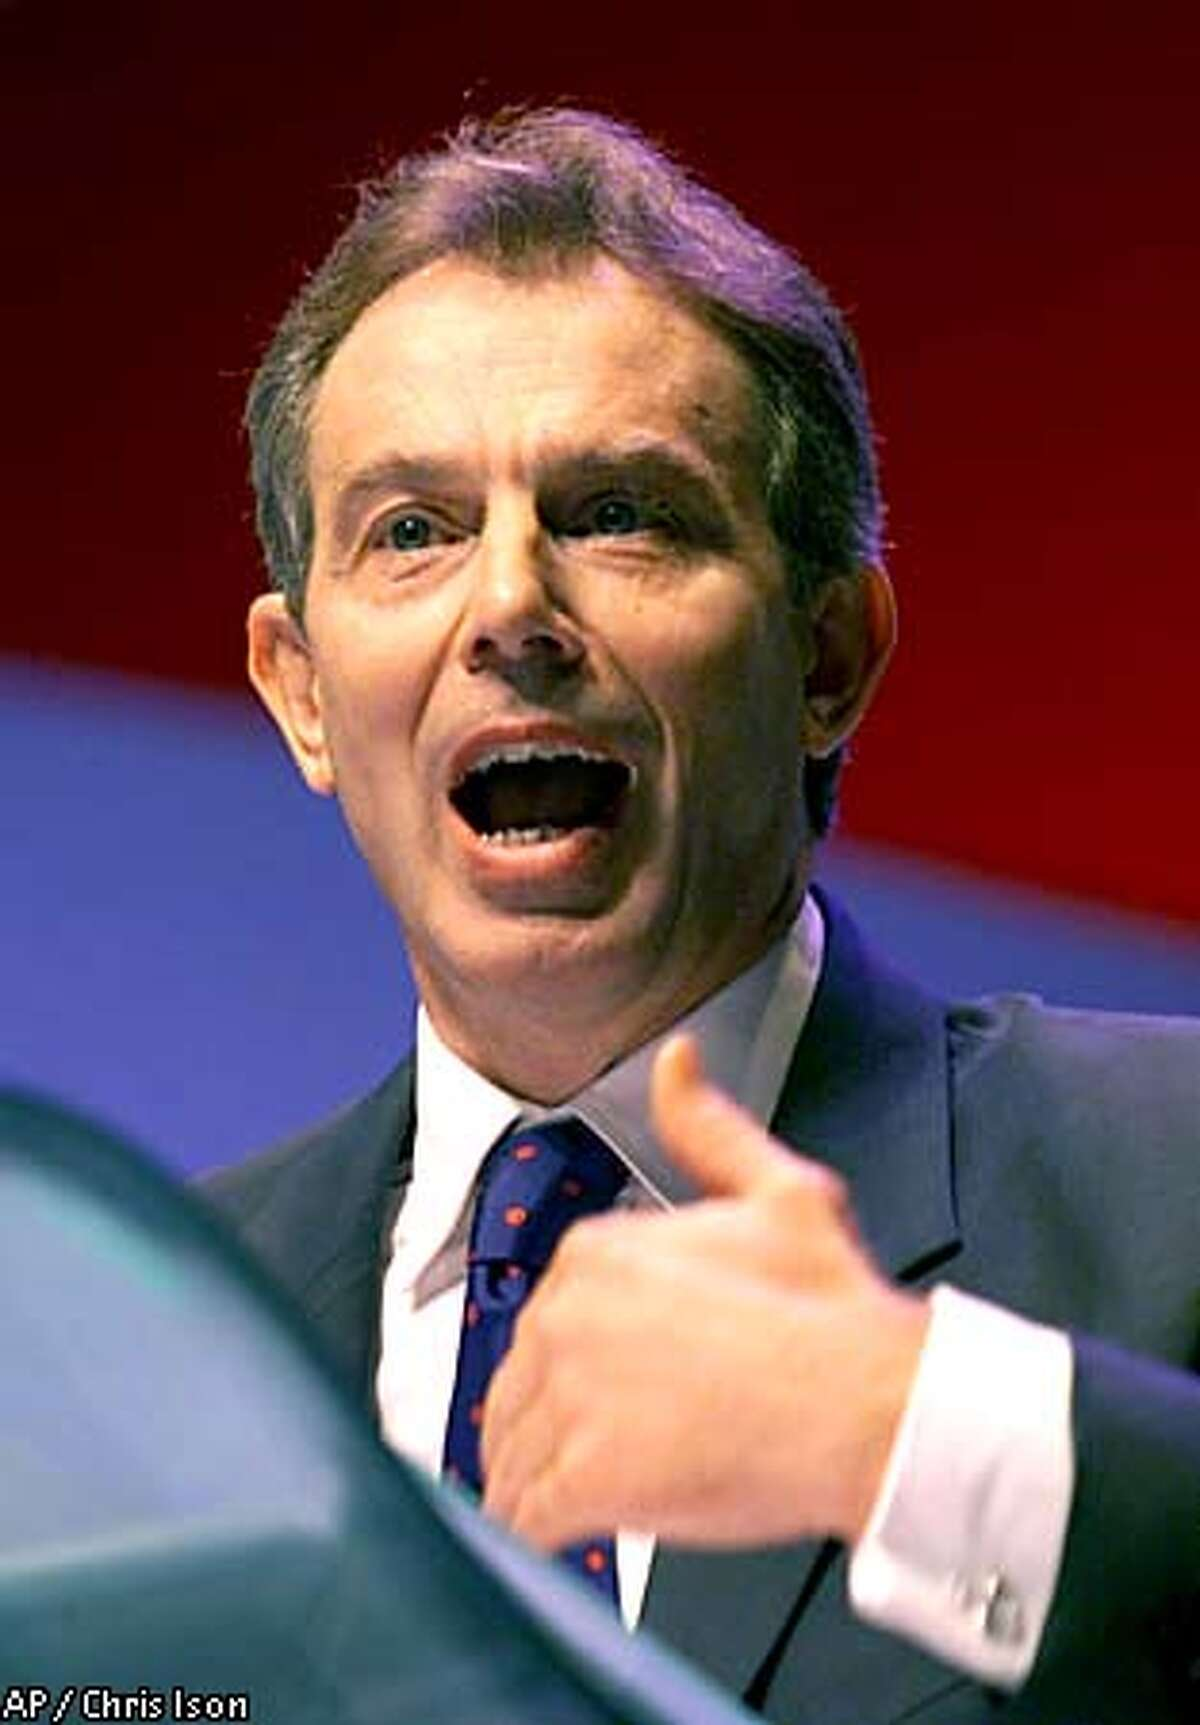 Britain's Prime Minister Tony Blair takes the stage to give his keynote speech at the Labour Party annual conference, in Brighton, England, Tuesday, Oct. 2, 2001. Blair warned Afghanistan's Taliban regime, during his speech, to surrender Osama bin Laden and his supporters or face being forced out of power. (AP Photo/Chris Ison/PA) UNITED KINGDOM OUT: MAGAZINES OUT: :